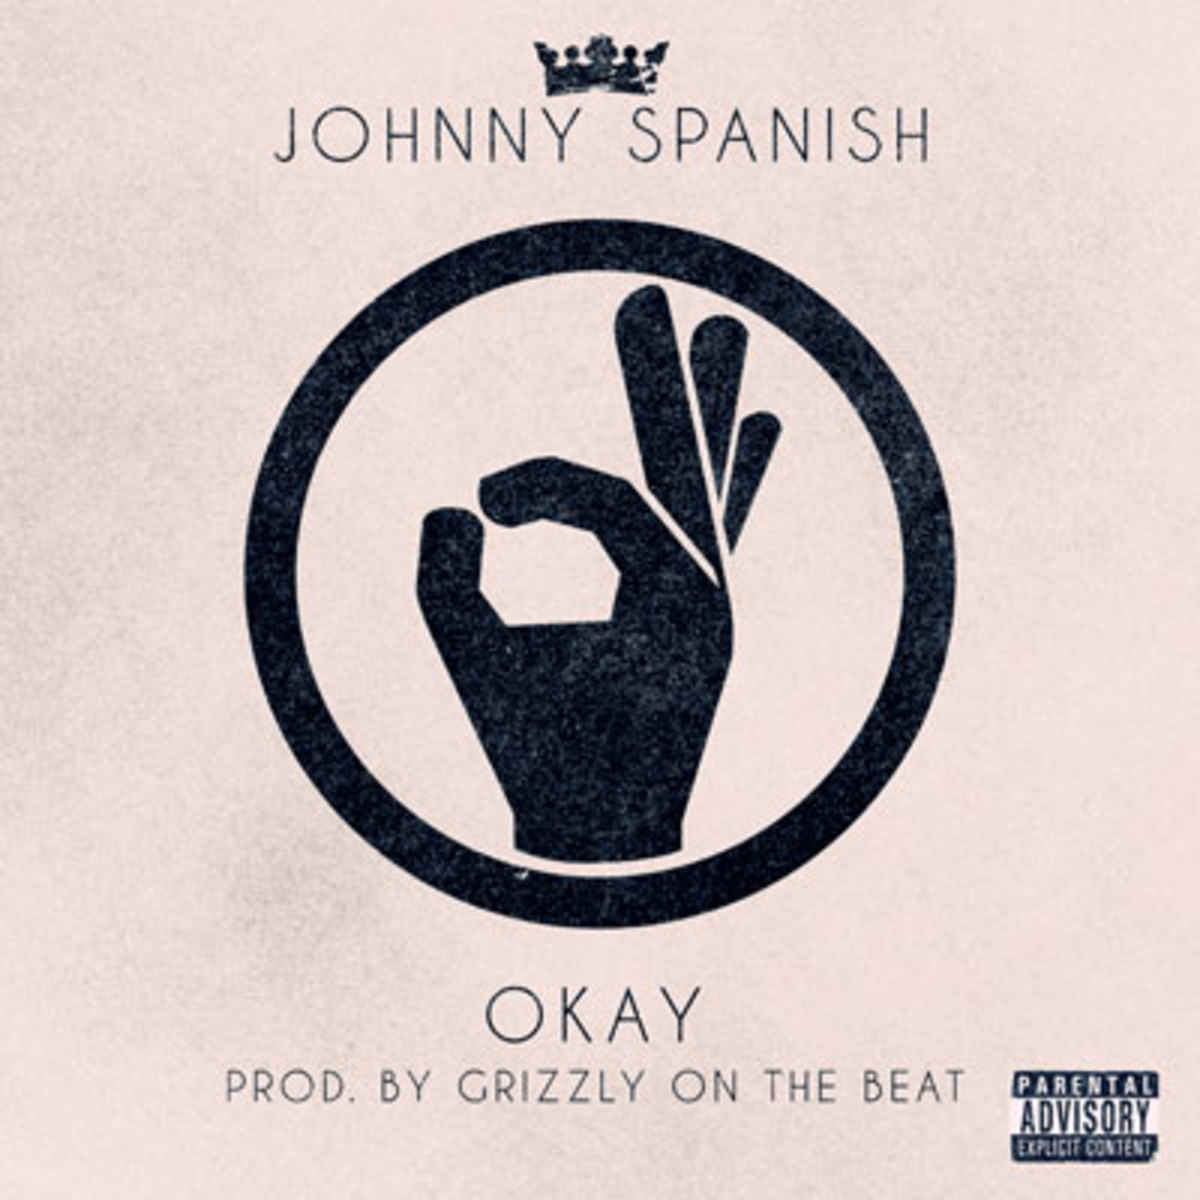 johnnyspanish-ok.jpg